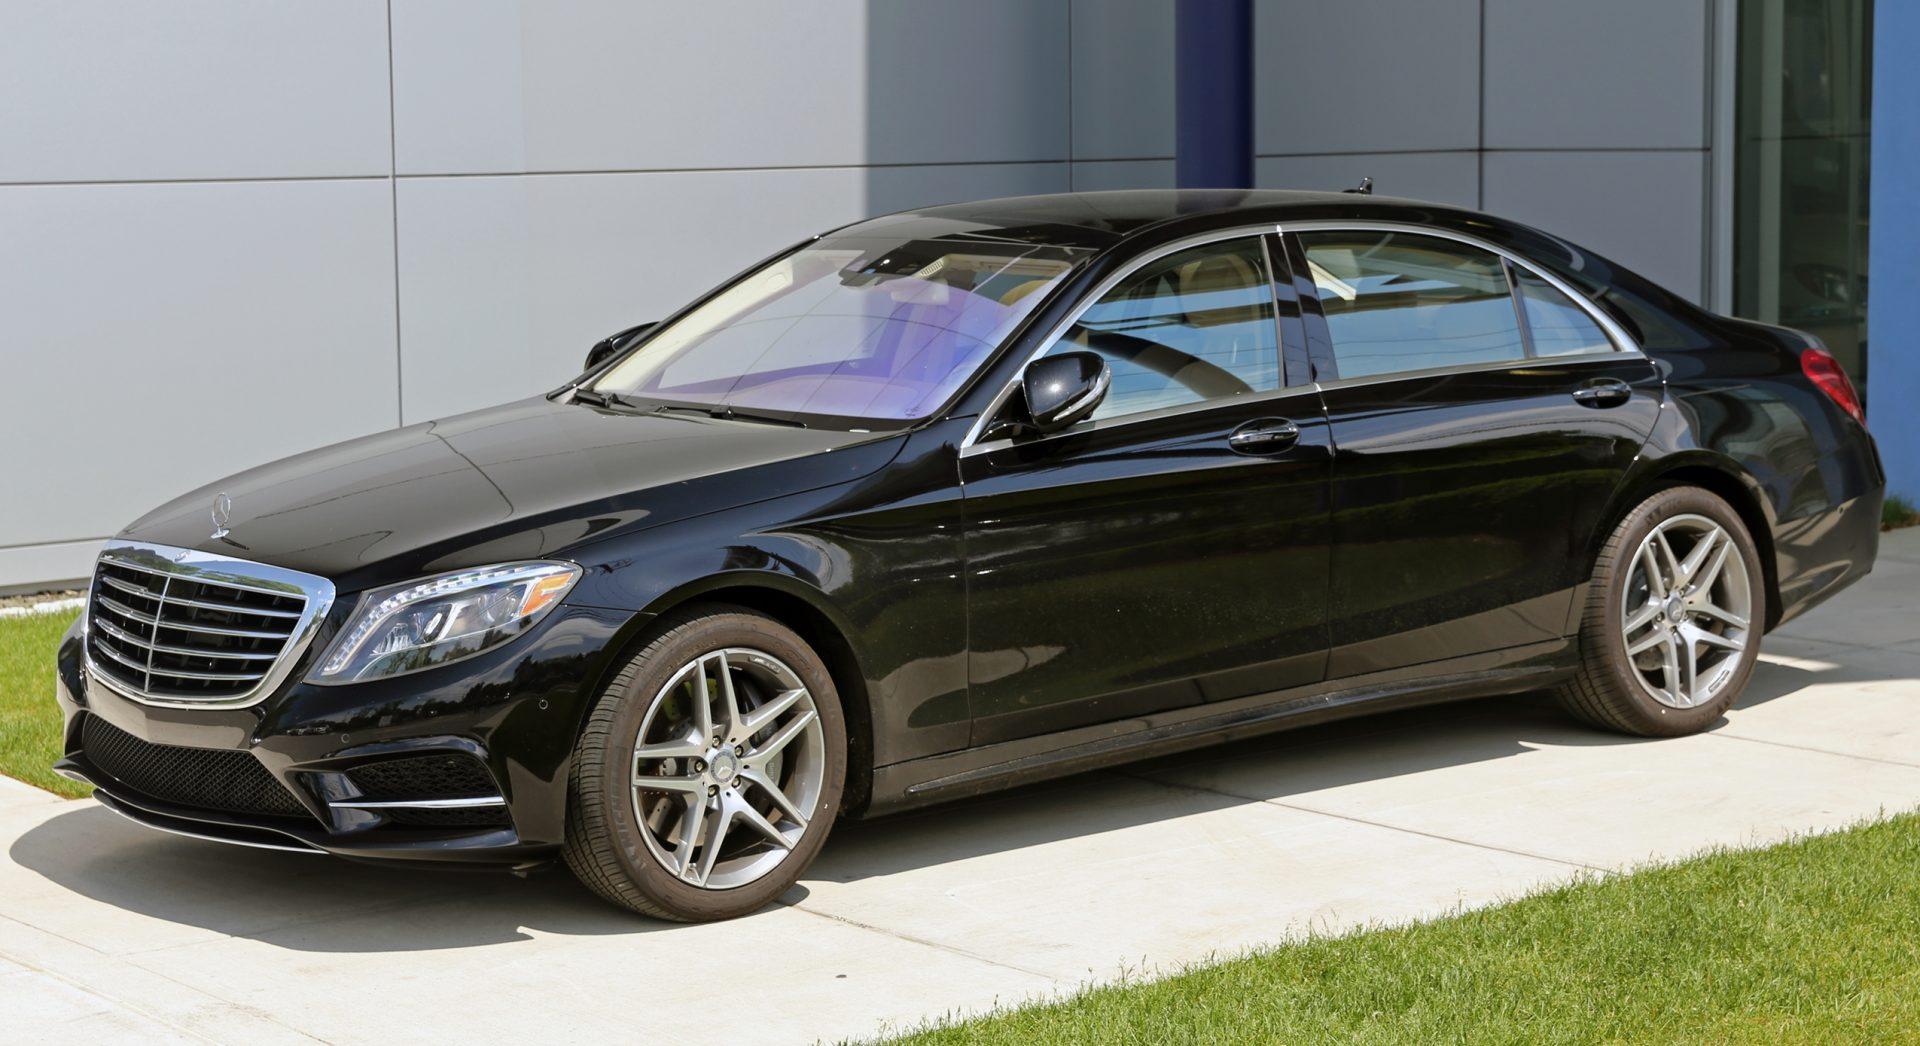 S550 mercedes pics and prices autos post for Mercedes benz s550 for sale